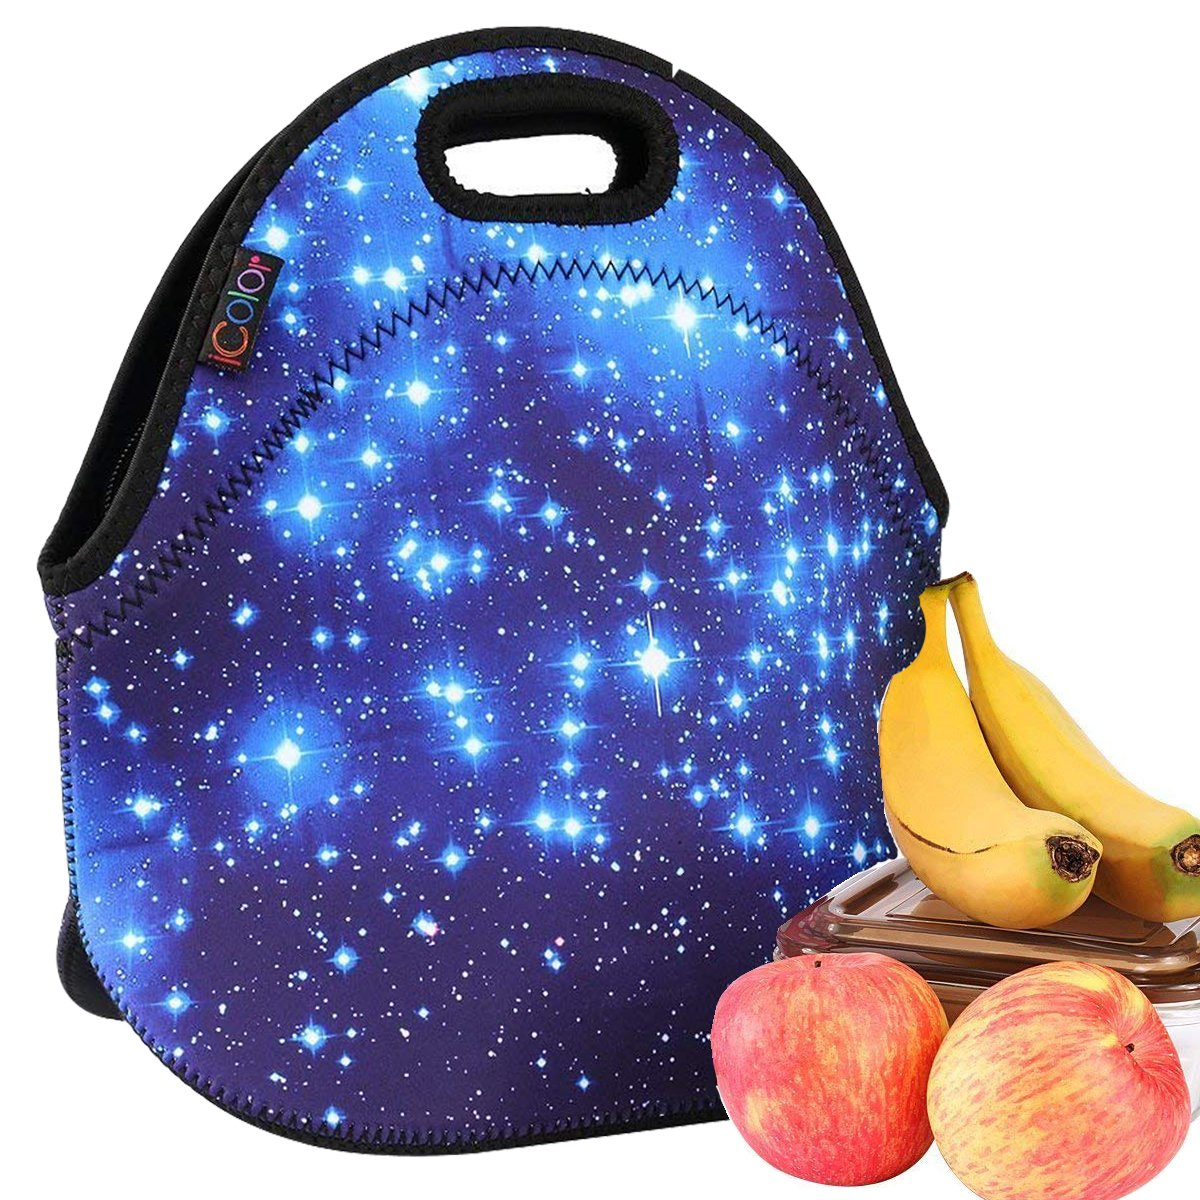 iColor Blue Shining Stars Boys Girls Kids Insulated School Travel Outdoor Thermal Waterproof Carrying Lunch Tote Bag Cooler Box Neoprene Lunchbox Container Case